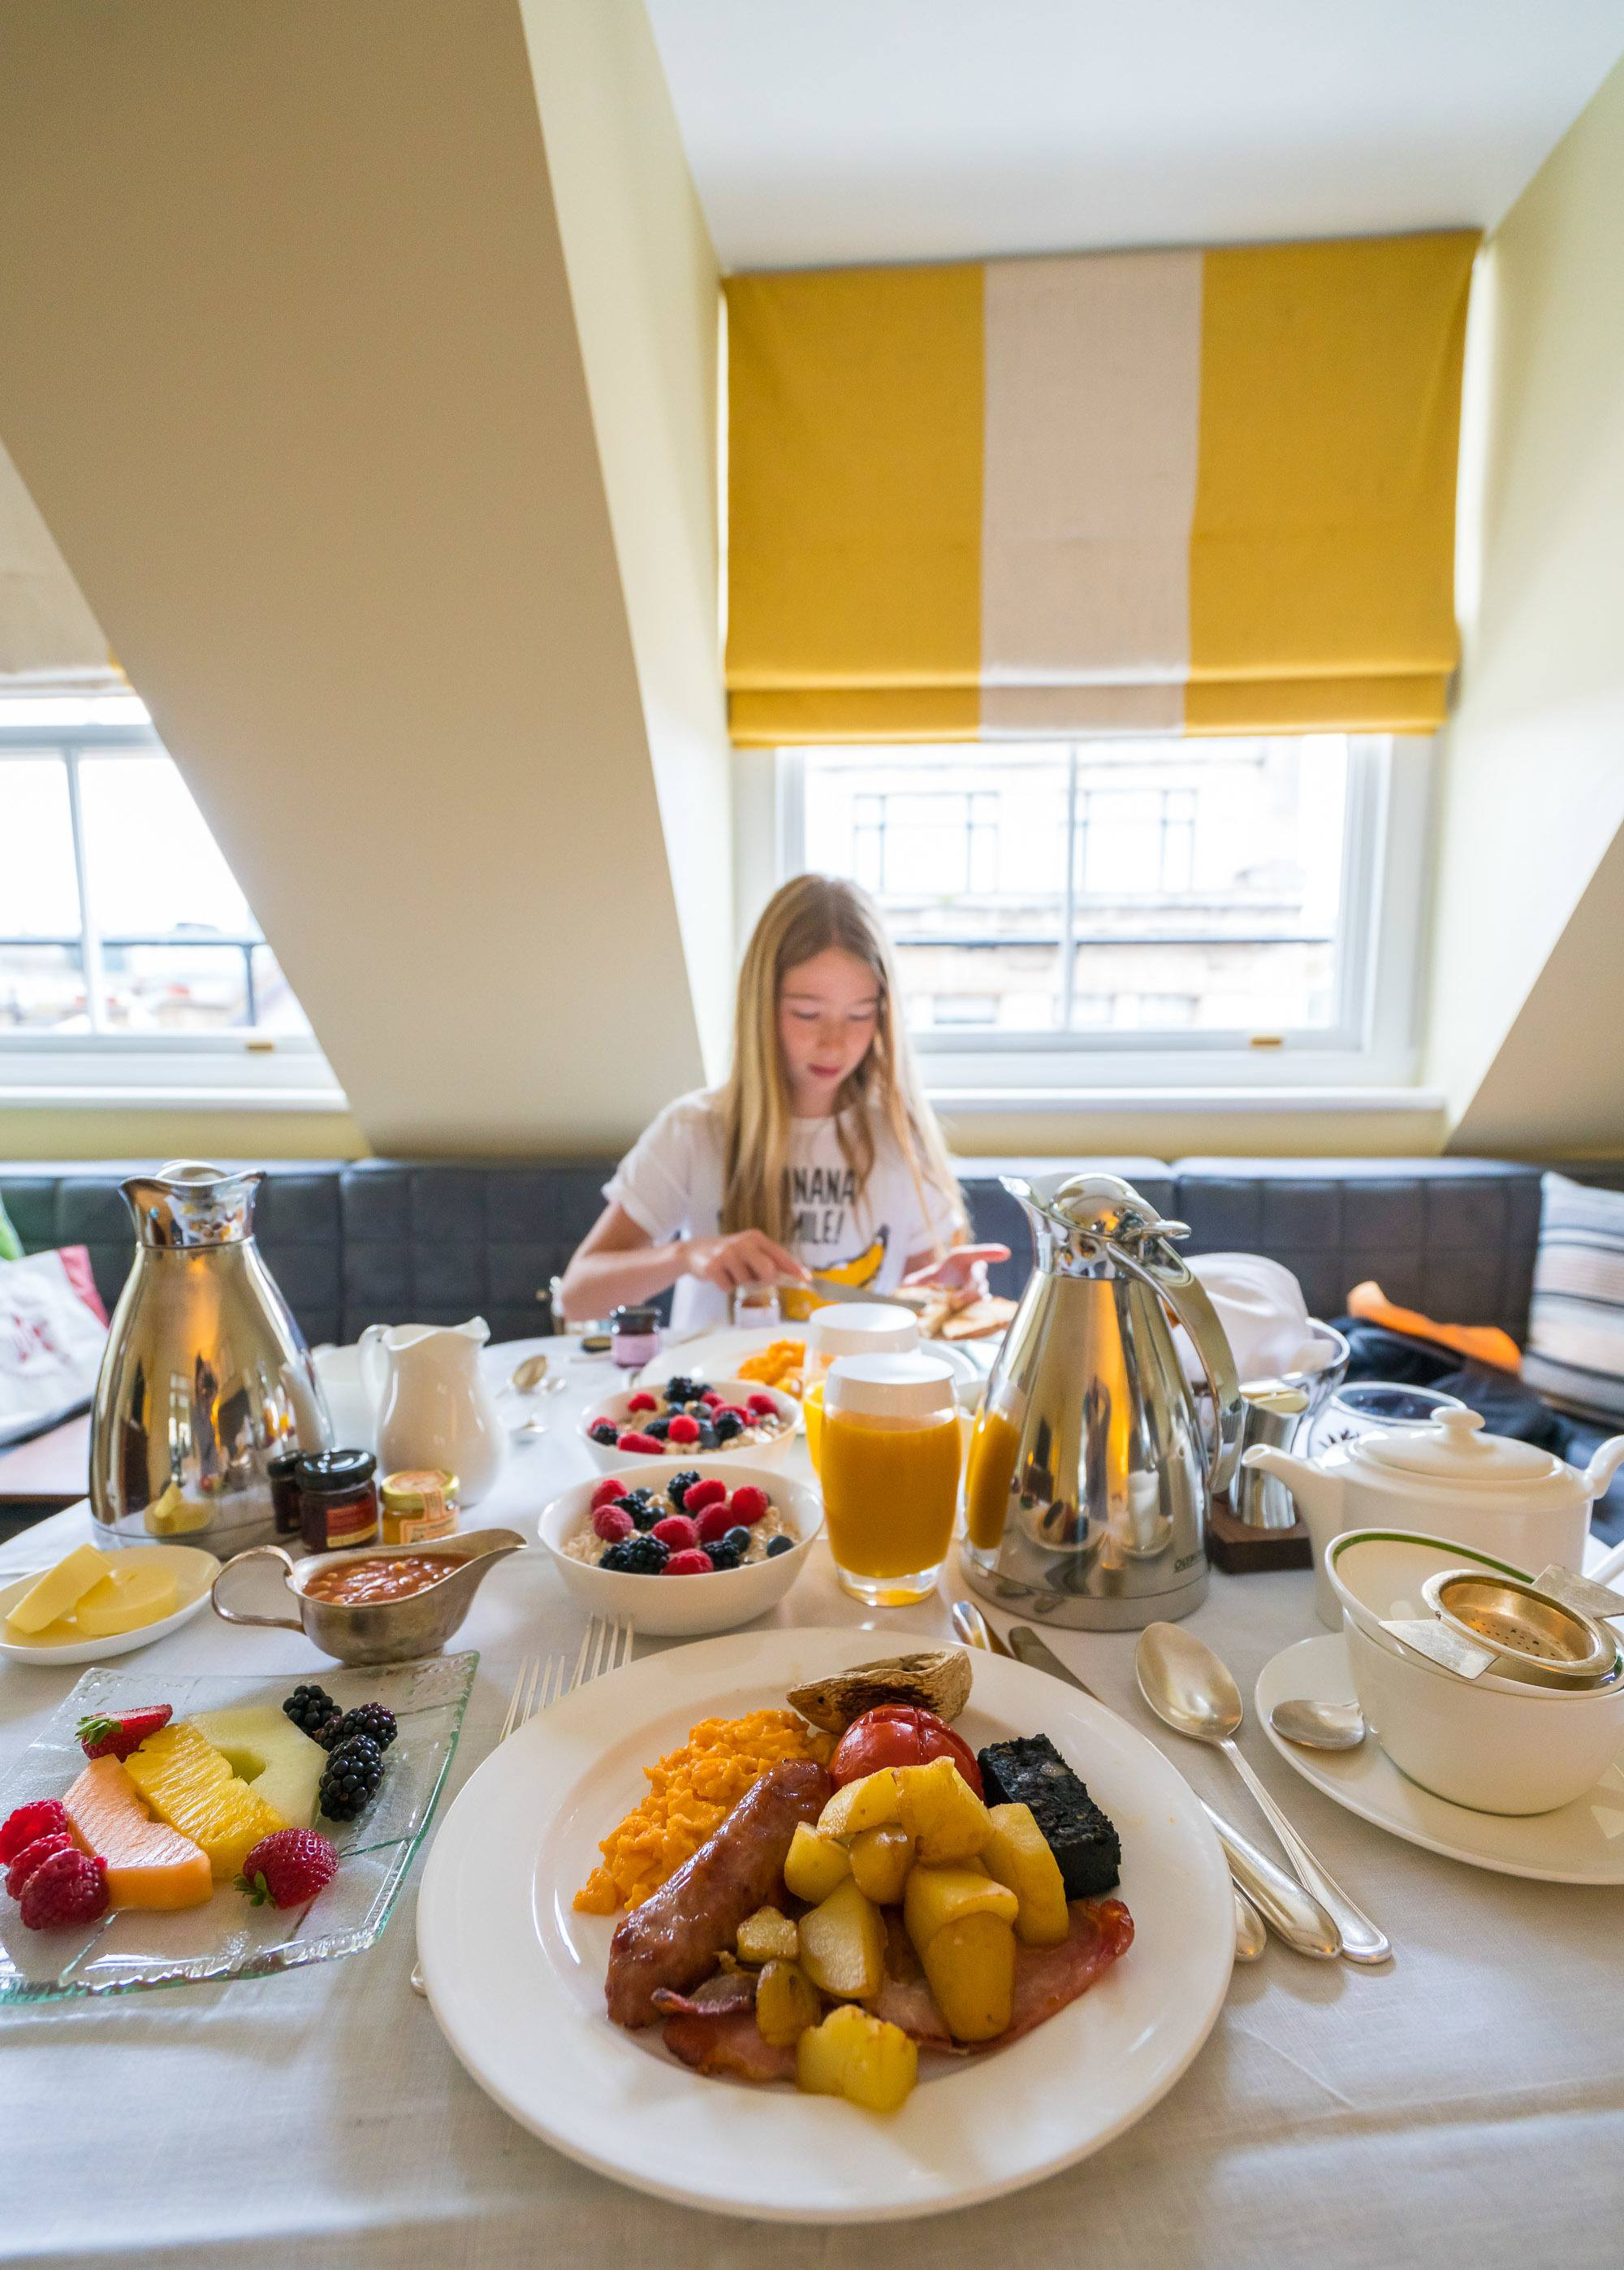 A full English breakfast via in-room dining at Brown's Hotel in London.